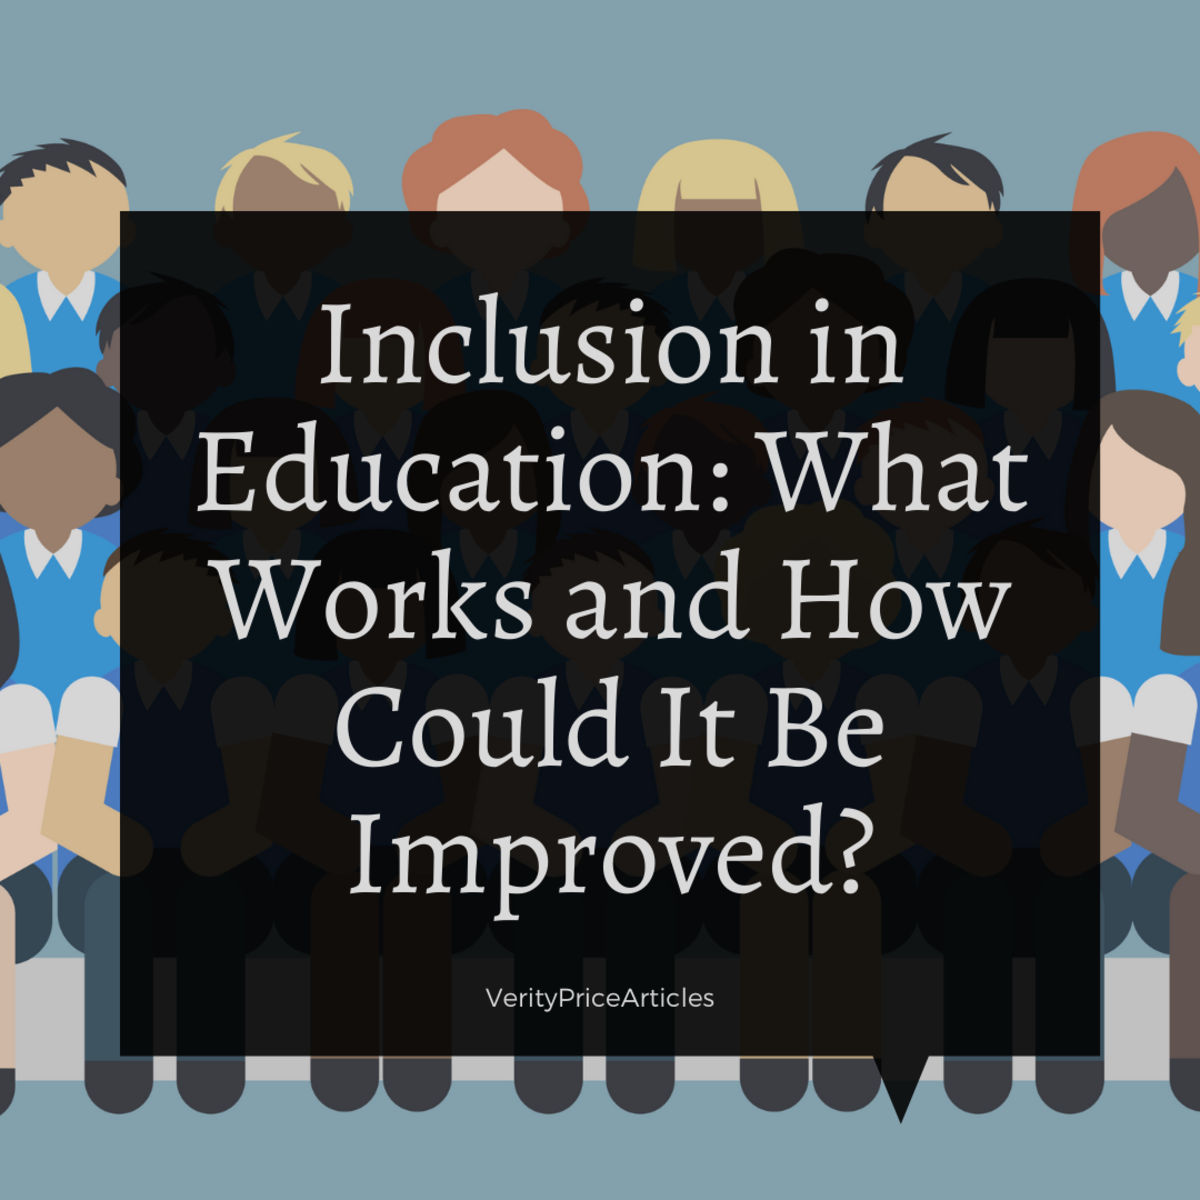 Inclusion in Education: What Works and How Could It Be Improved?